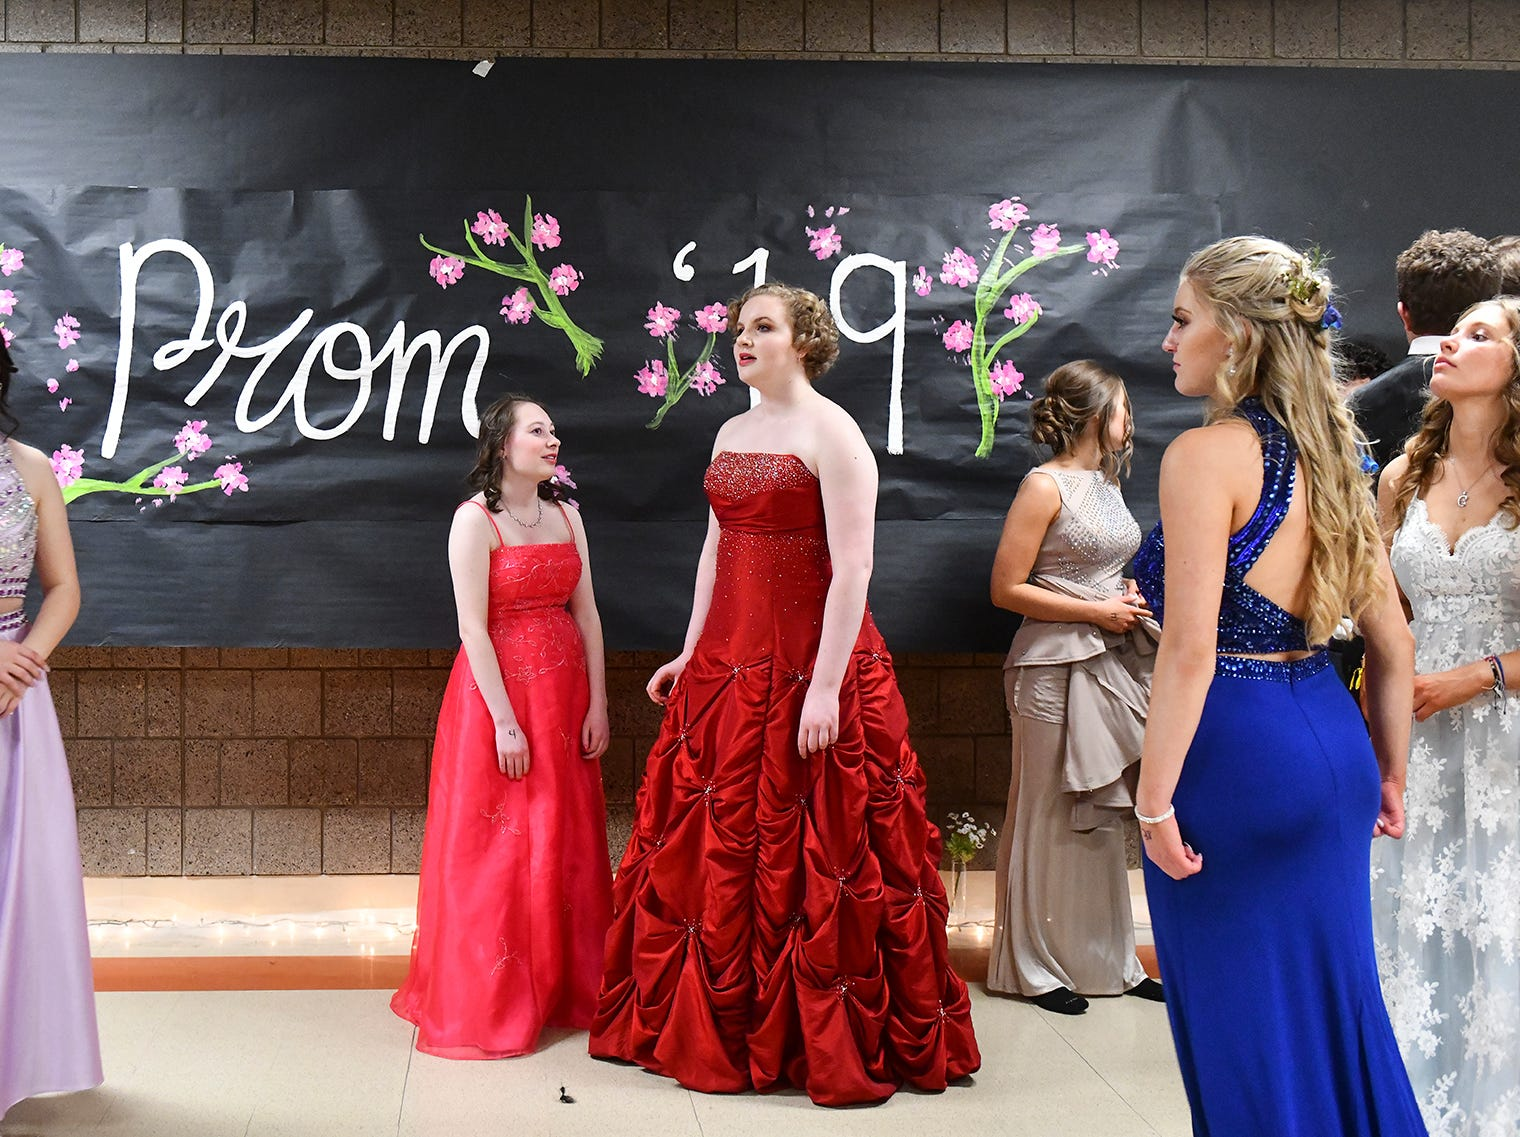 Students gather in the hallway following prom grand march Saturday, April 27, at Tech High School in St. Cloud.